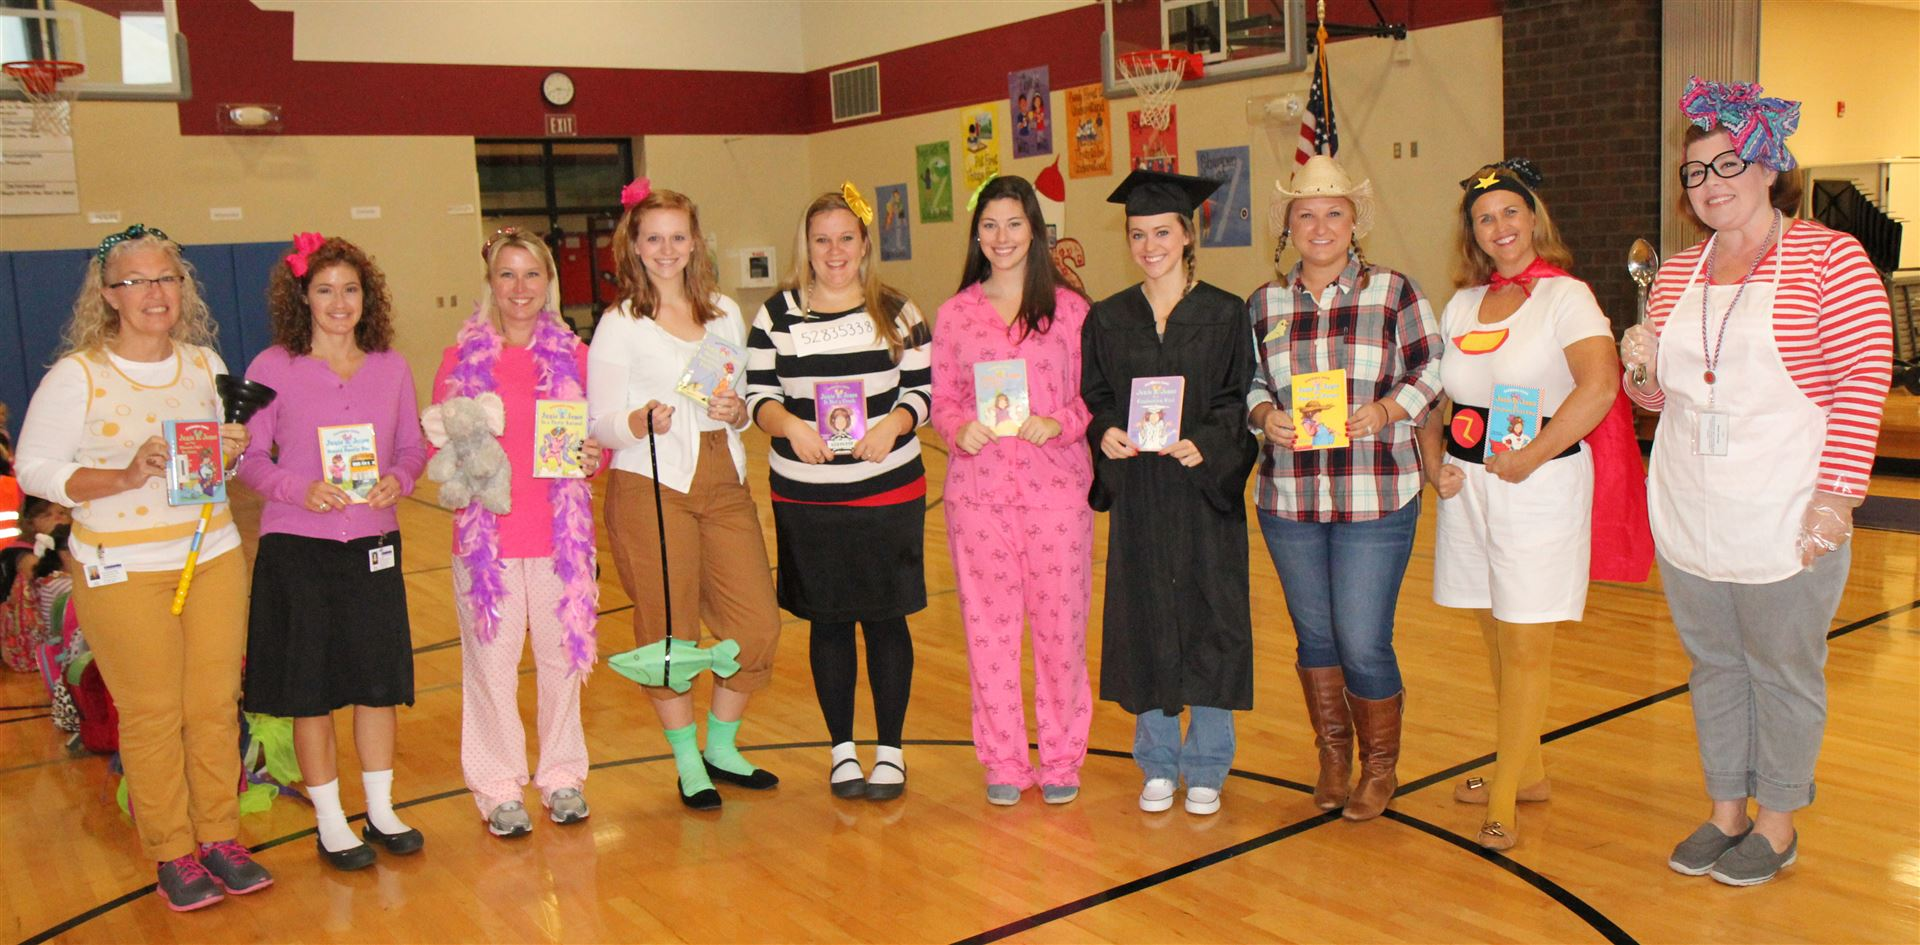 Dress Like a Book Cover Day at JRES